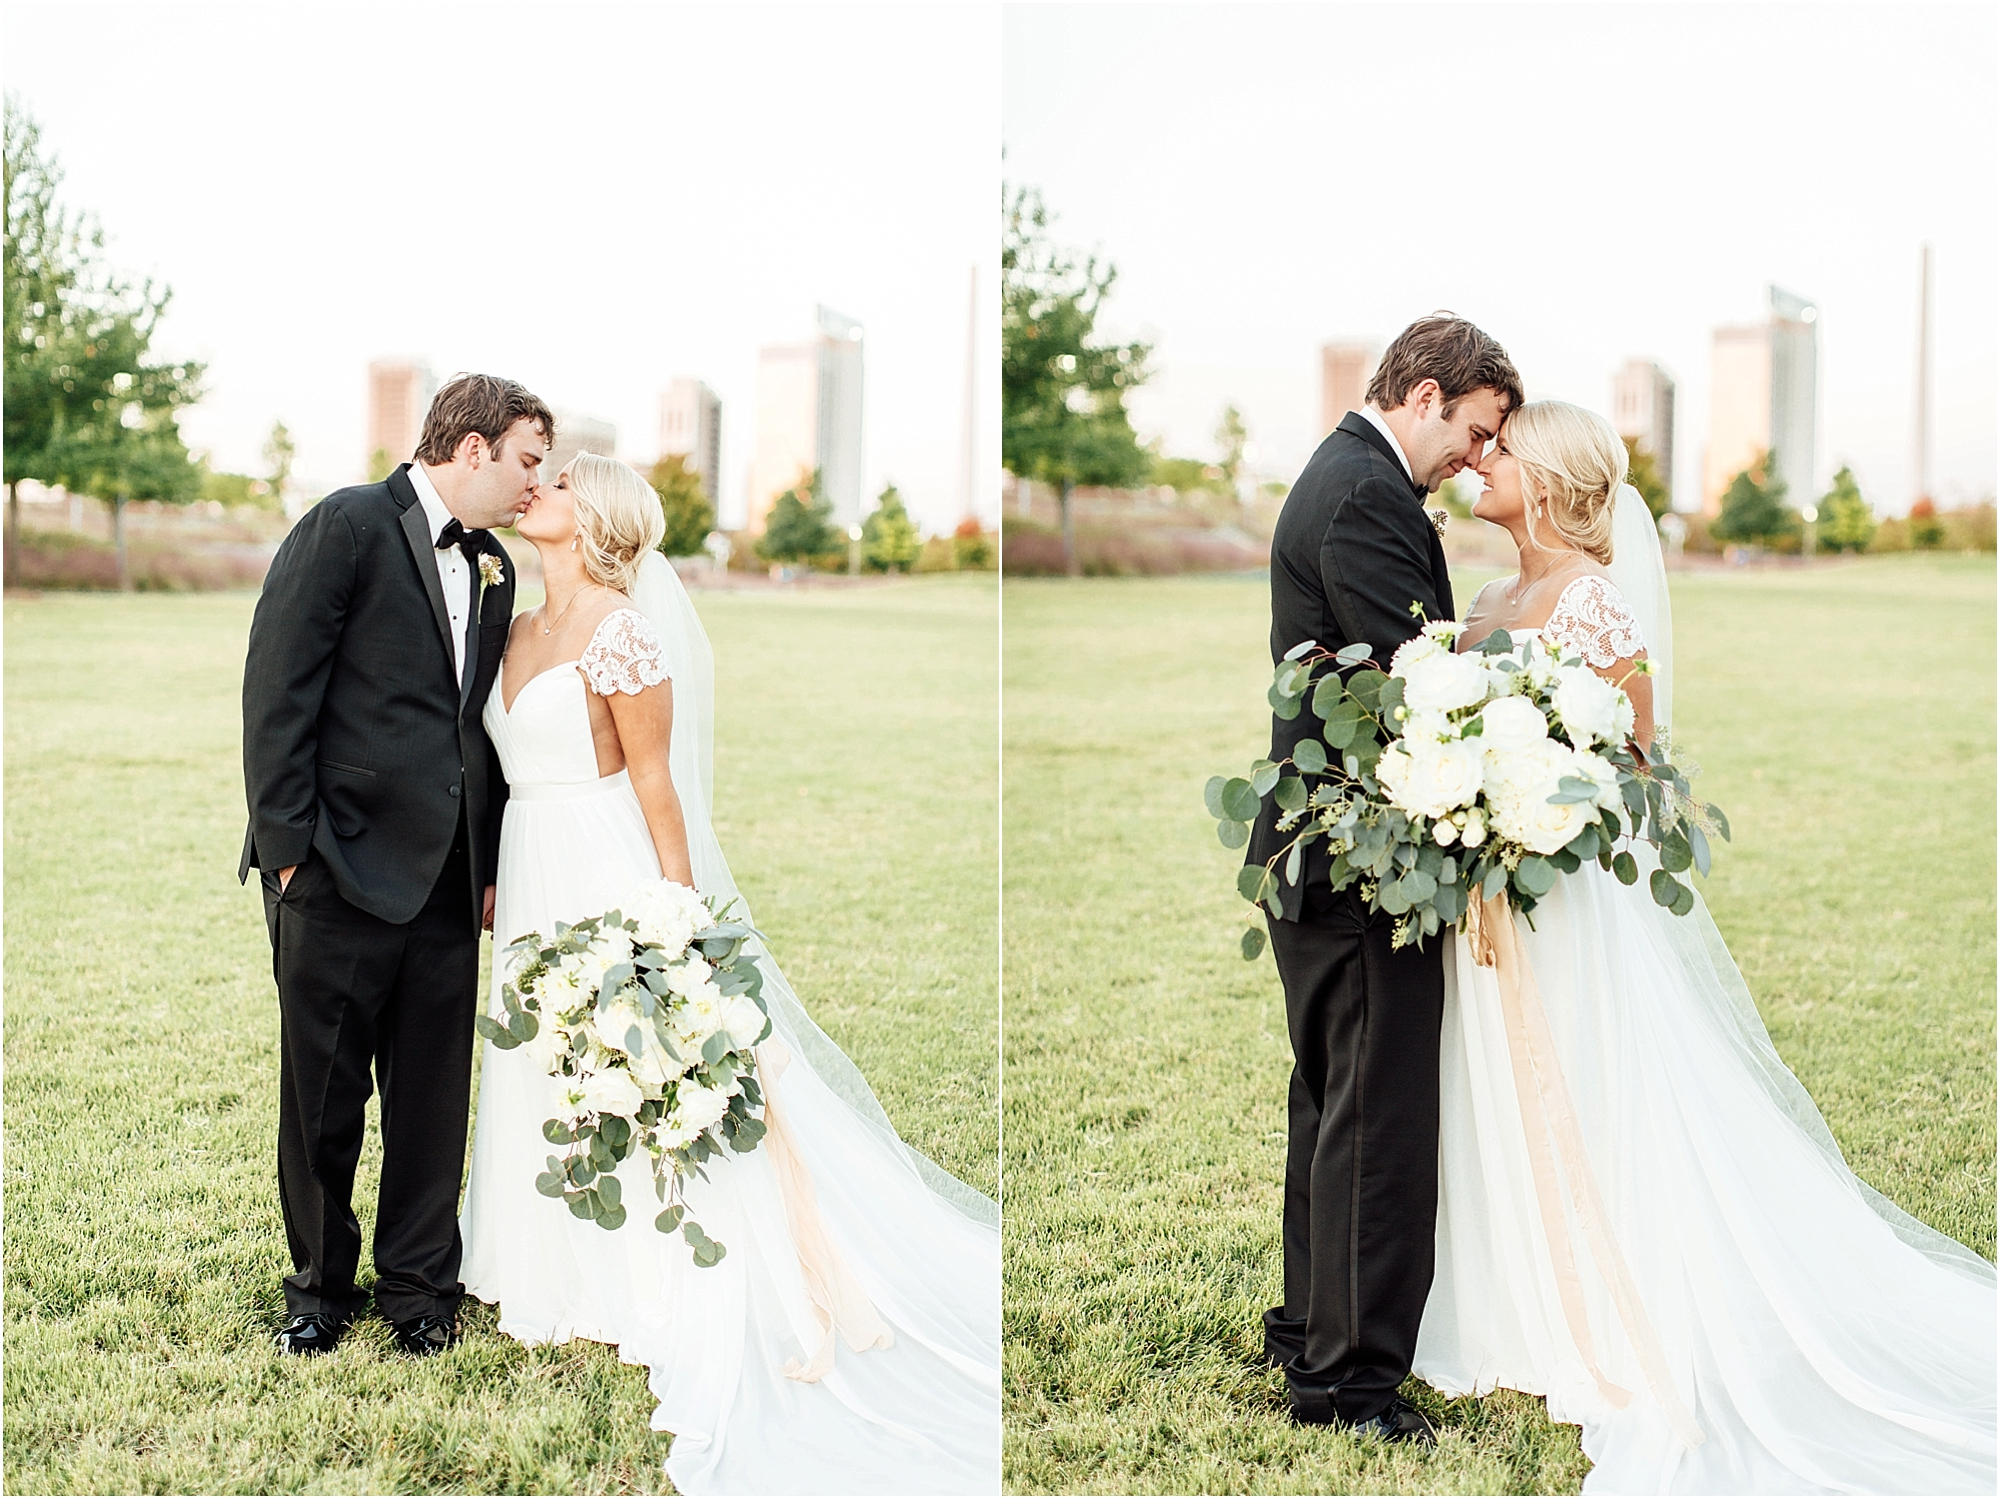 lindsey ann photography, railroad park wedding, regions park wedding, fall wedding, birmingham downtown wedding, birmingham wedding photographer